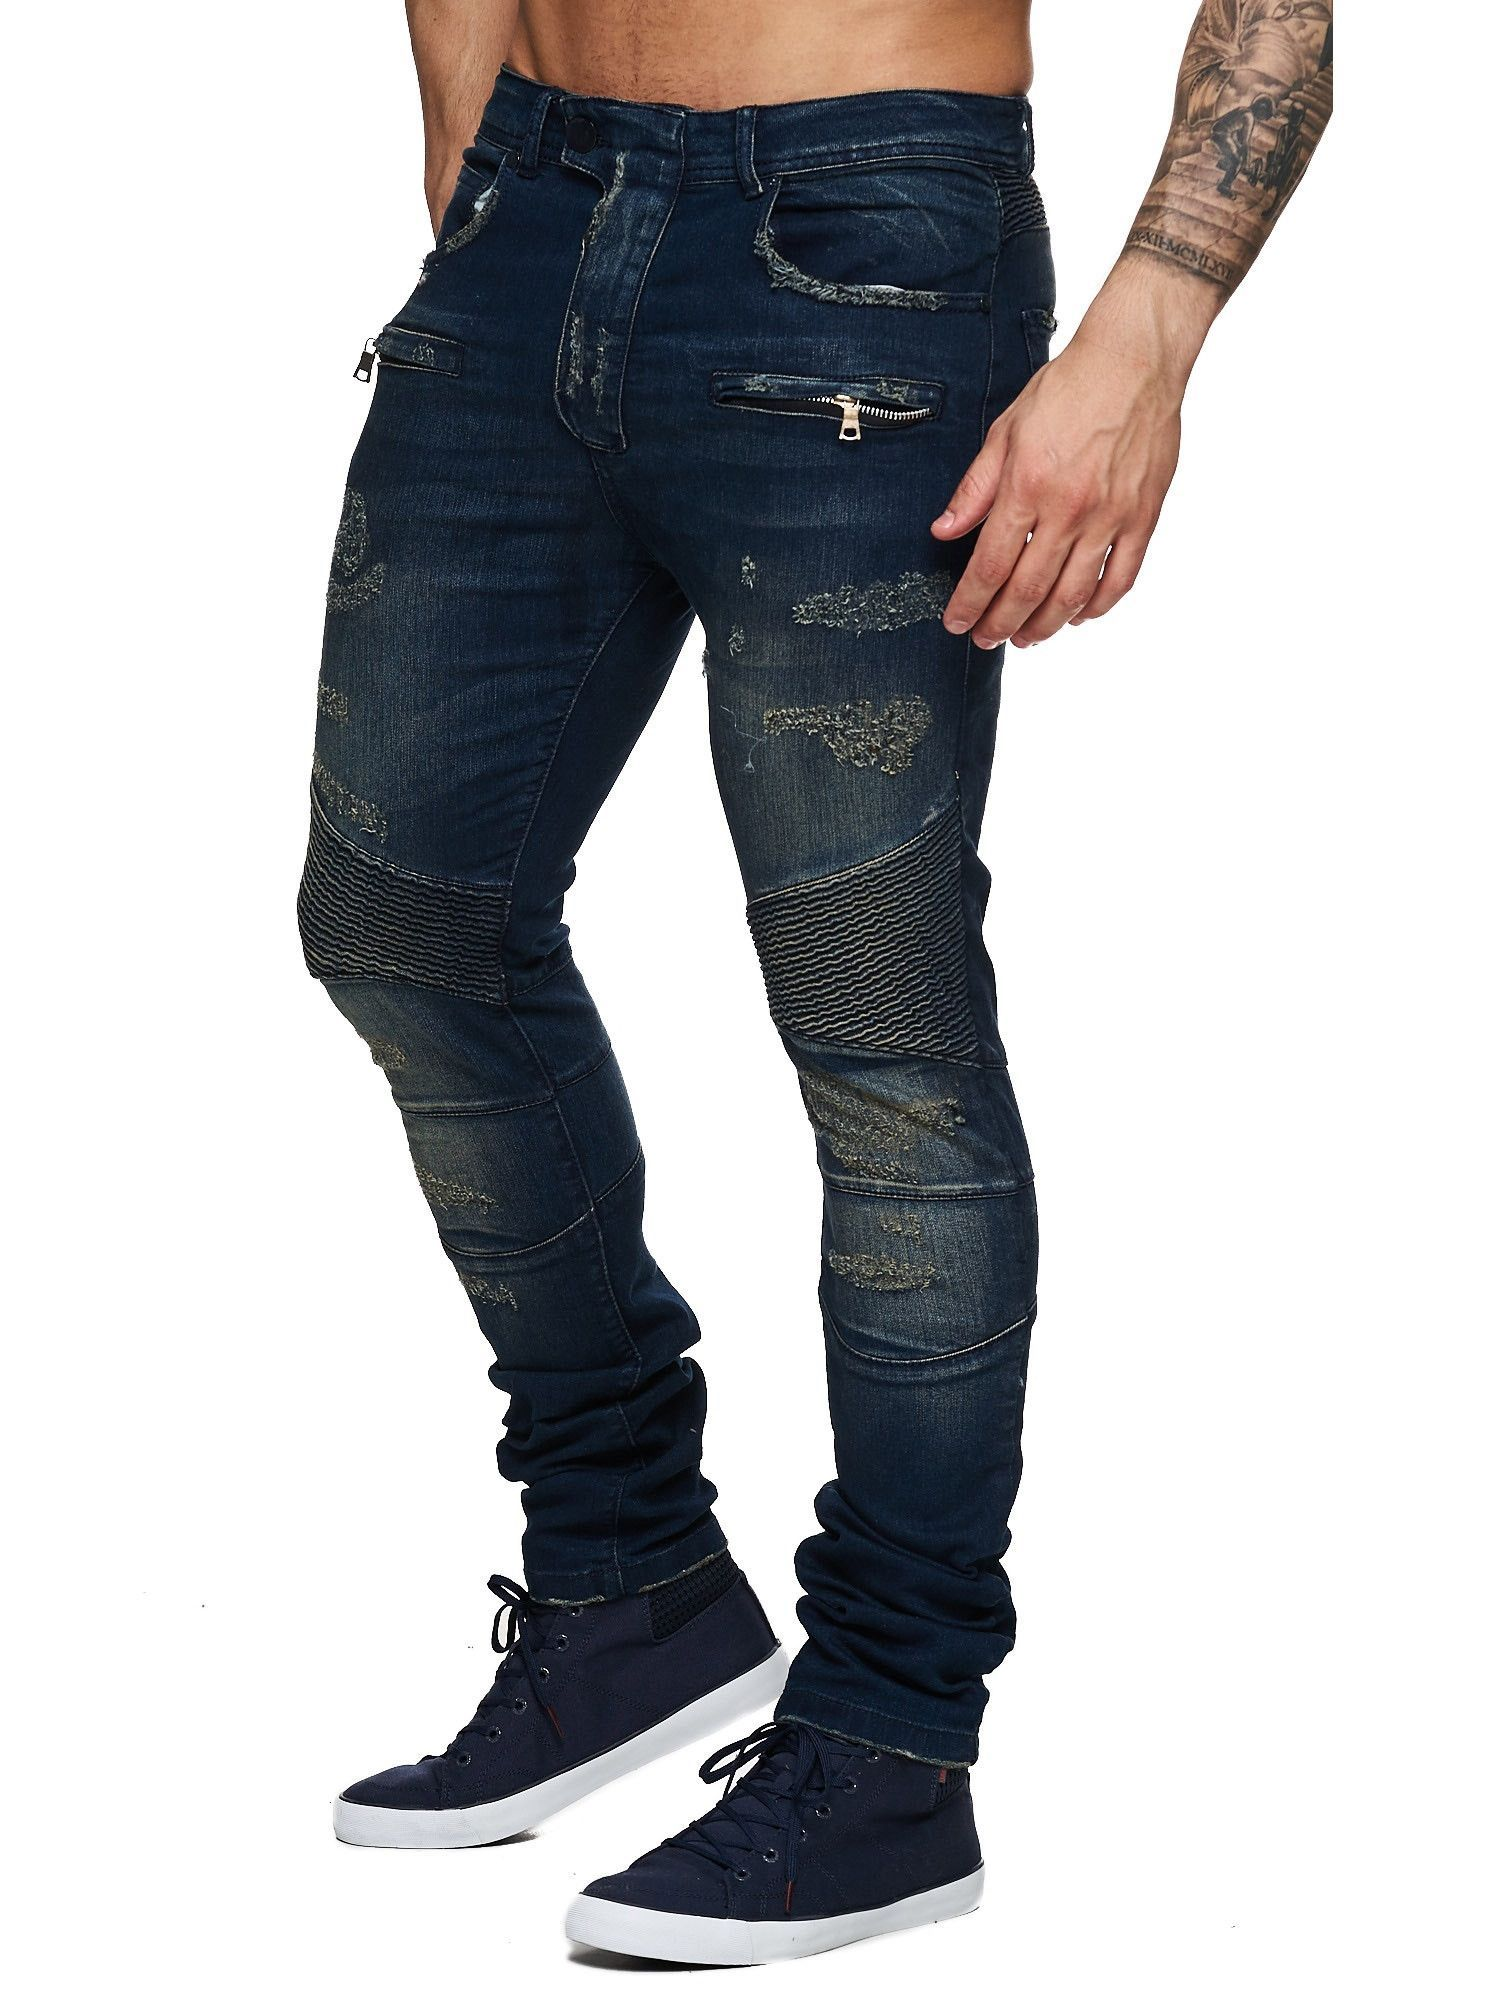 2baf16fe83d F&S Men Slim Fit Denim BX05 Biker Distressed Jeans - Dark Blue ...